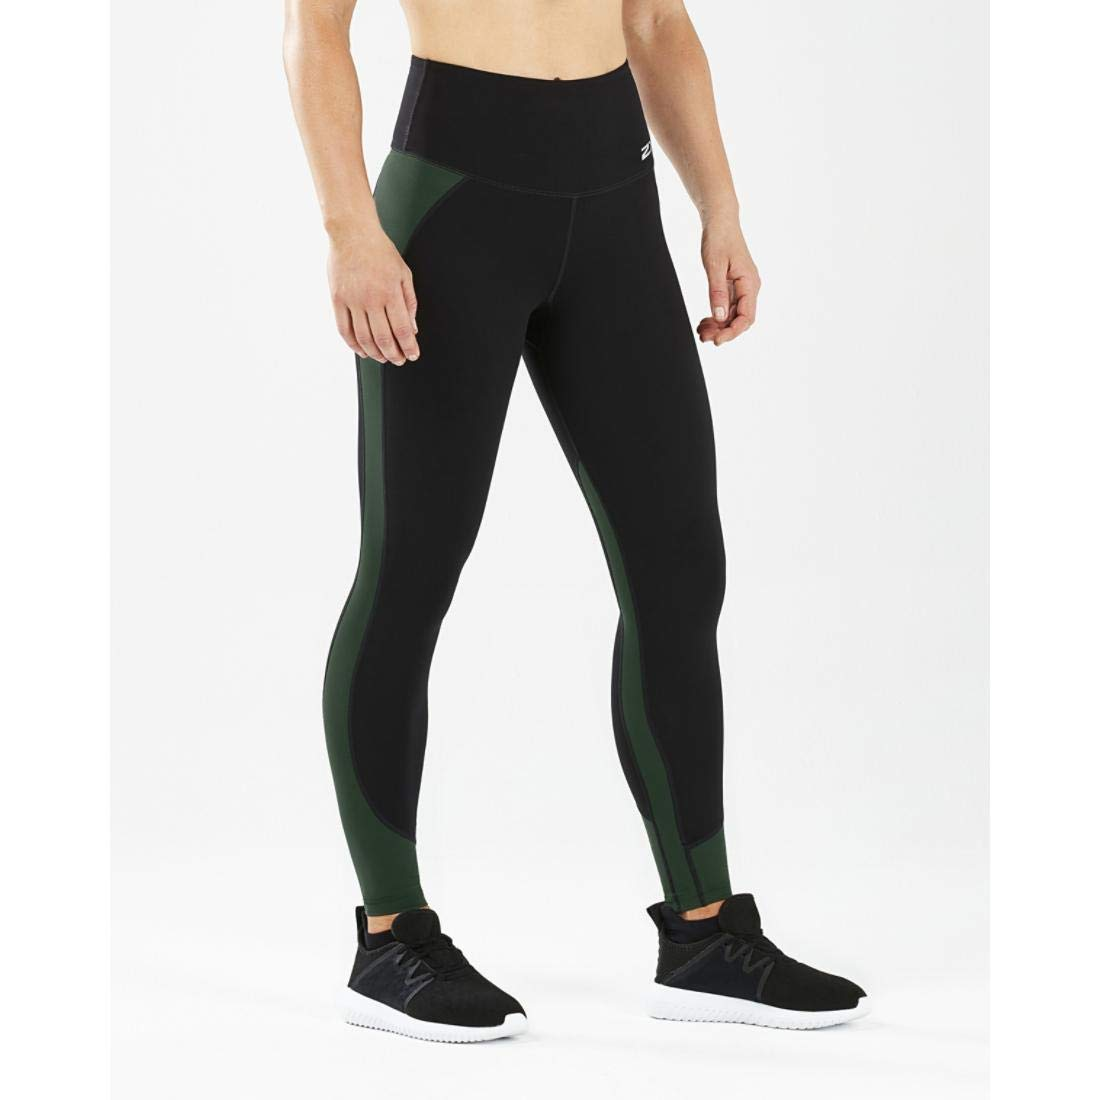 2XU Women's Fitness Hi-Rise Comp Tights, Black/Mountain View, M-T by 2XU